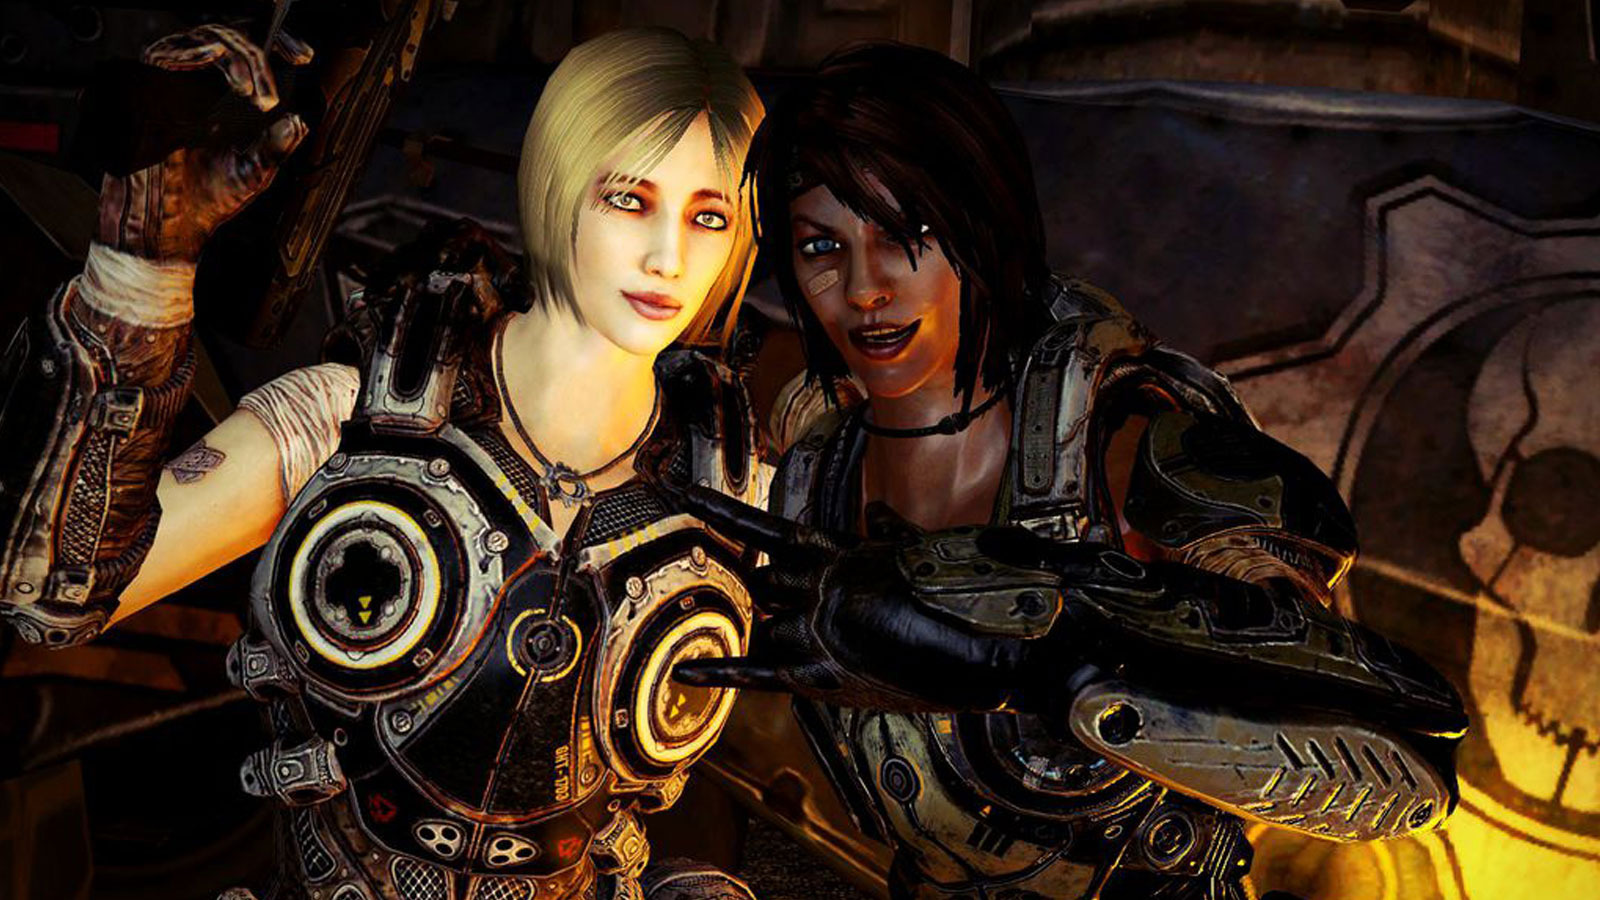 Later Gears of War games have included more women among the main heroes. Pictured: Anya and Sam from Gears of War 3.